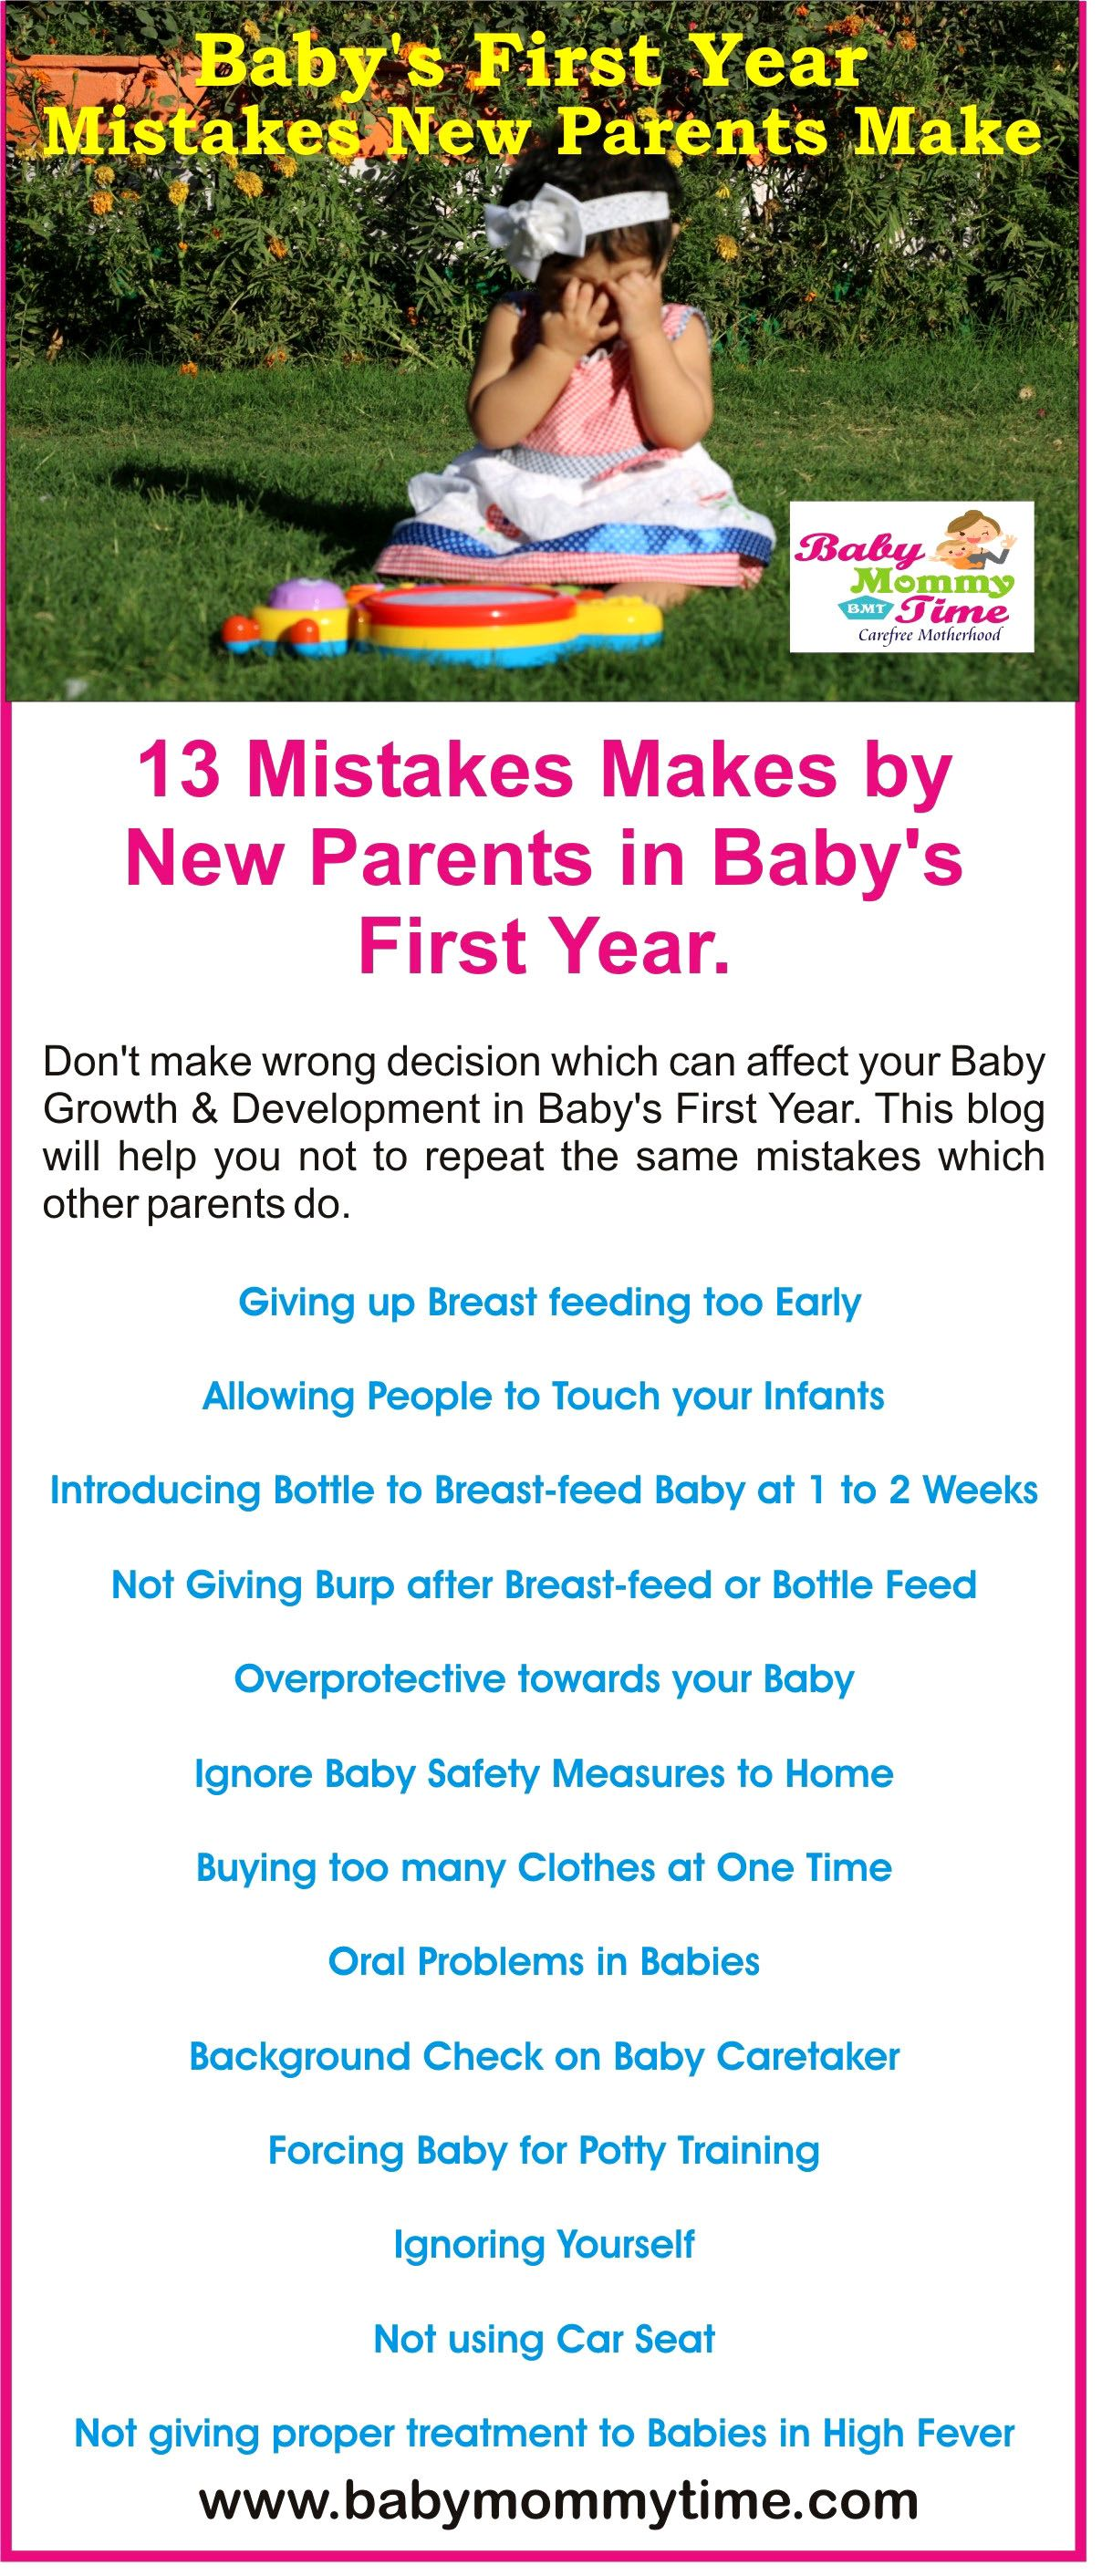 Baby's First Year Mistakes New Parents Make New